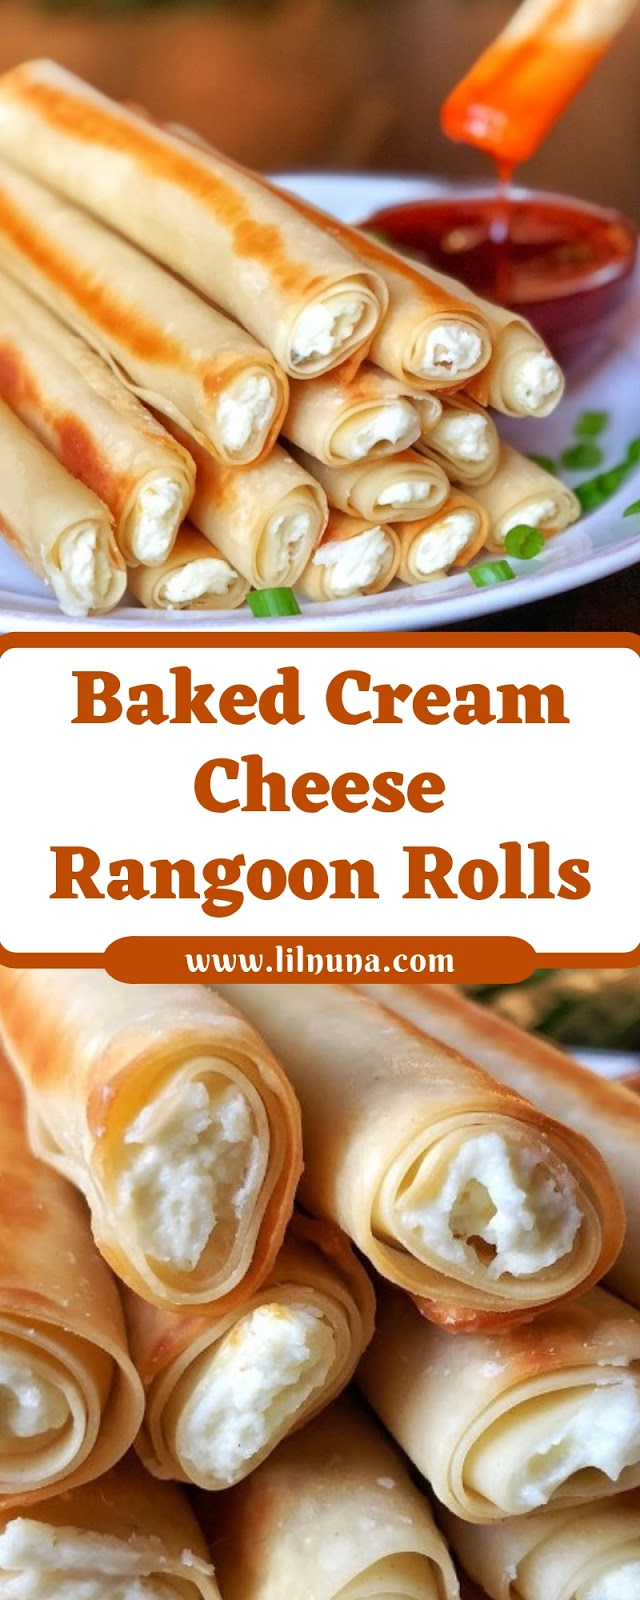 Baked Cream Cheese Rangoon Rolls